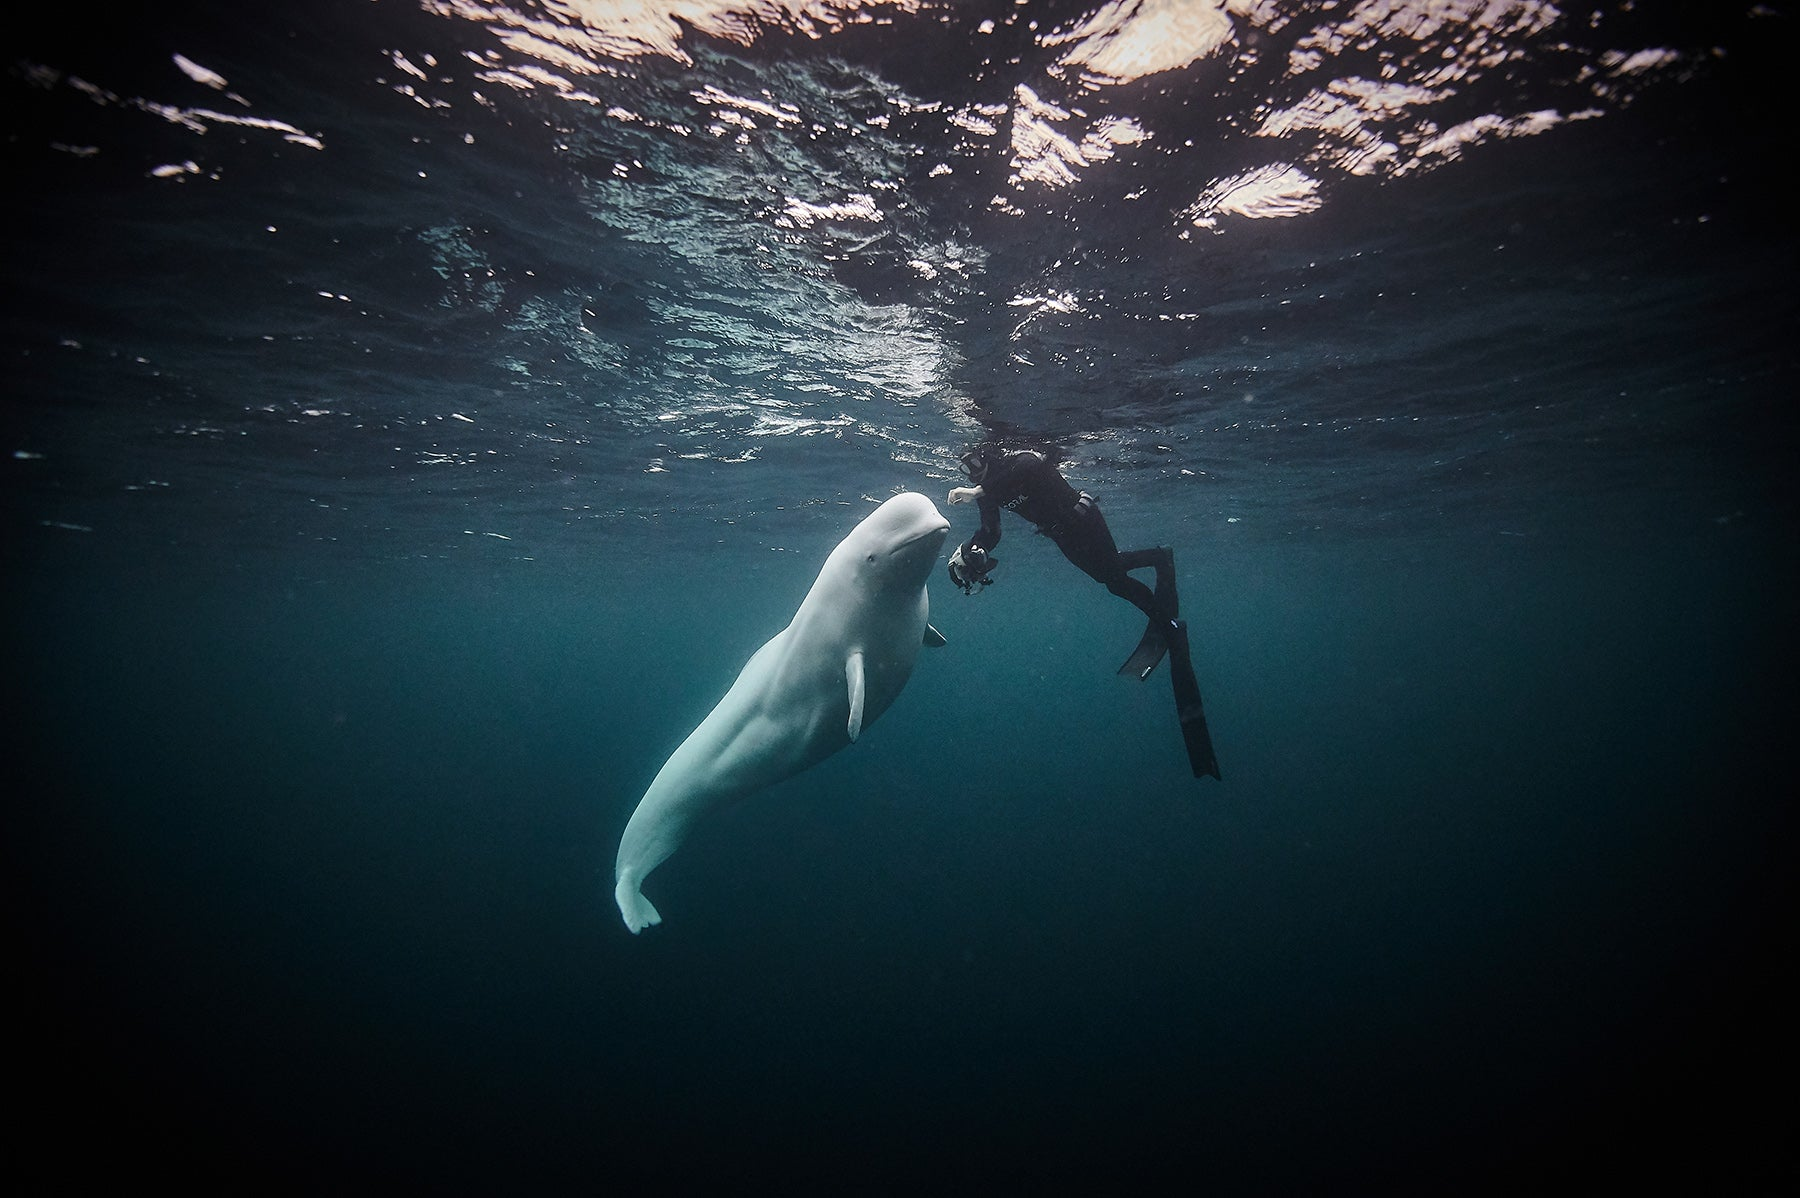 Hvladimir the beluga whale comes to meet a diver in the water